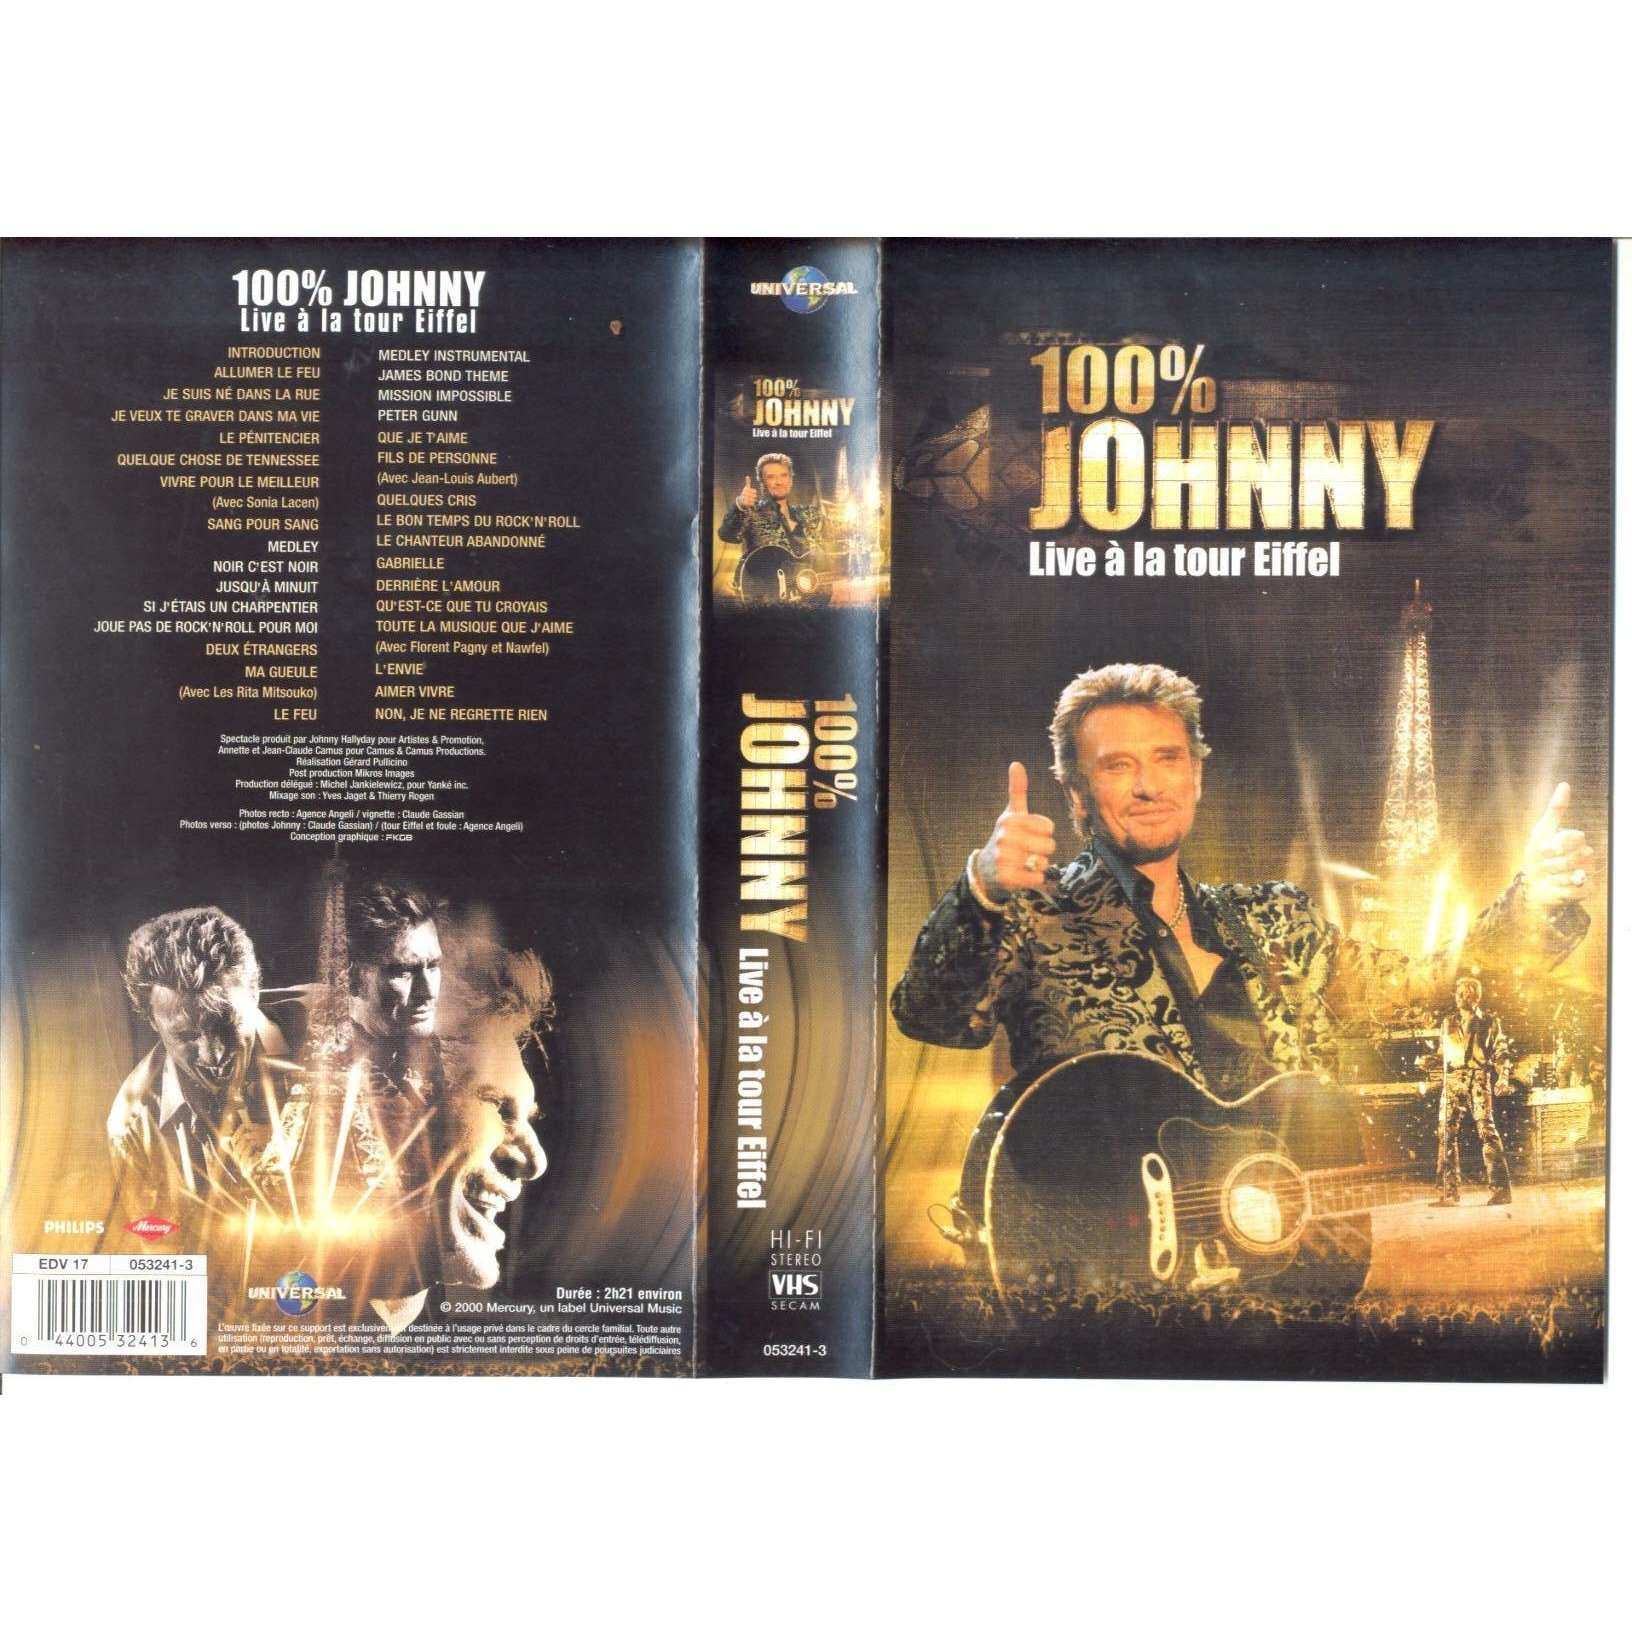 JOHNNY HALLYDAY 100% JOHNNY.LIVE A LA TOUR EIFFEL